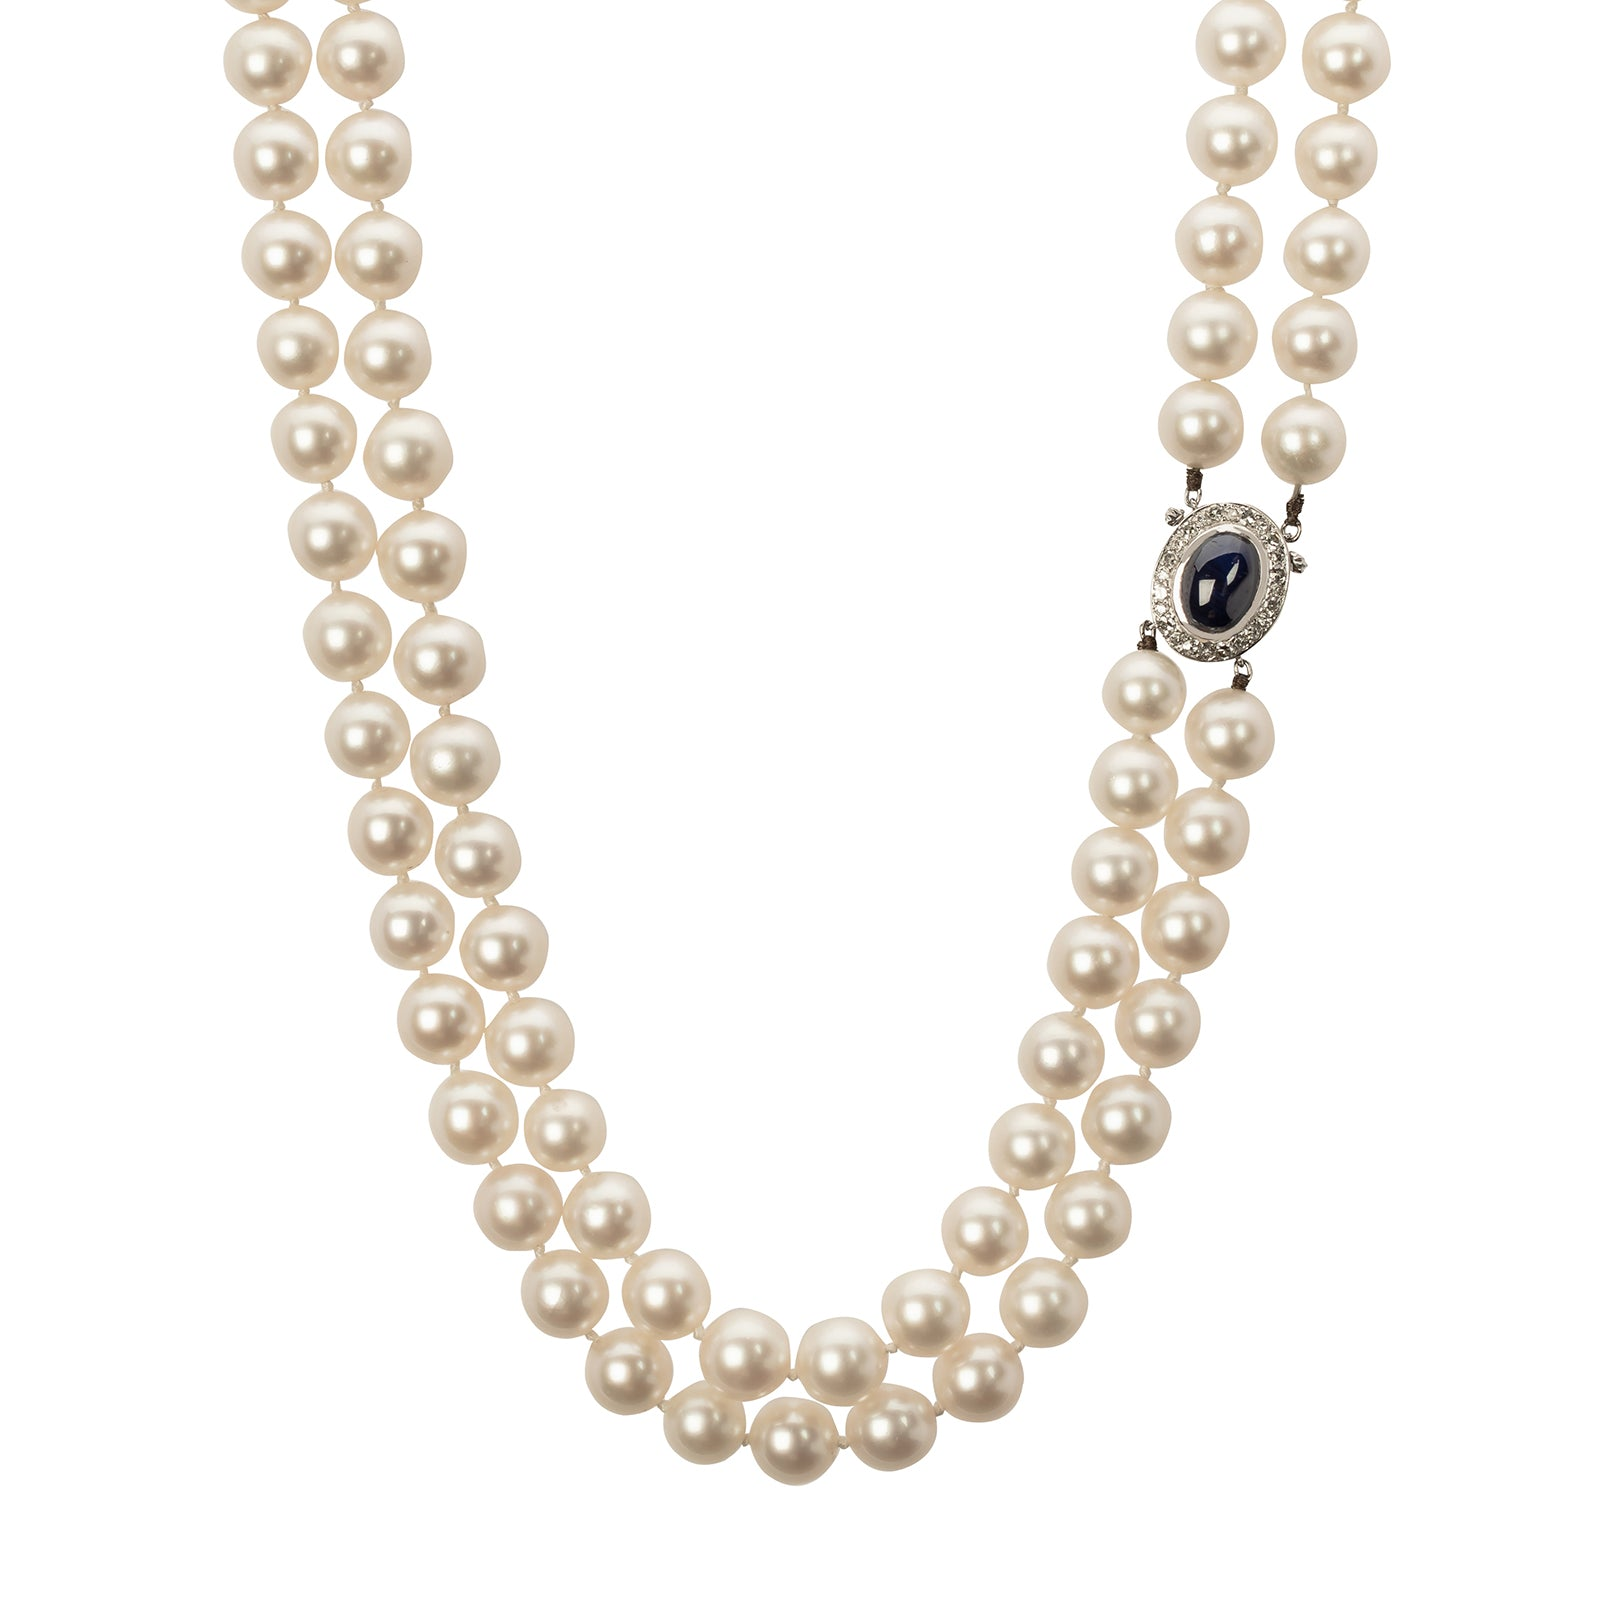 Antique & Vintage Jewelry Van Cleef & Arpels Double Strand Pearl Necklace - Necklaces - Broken English Jewelry